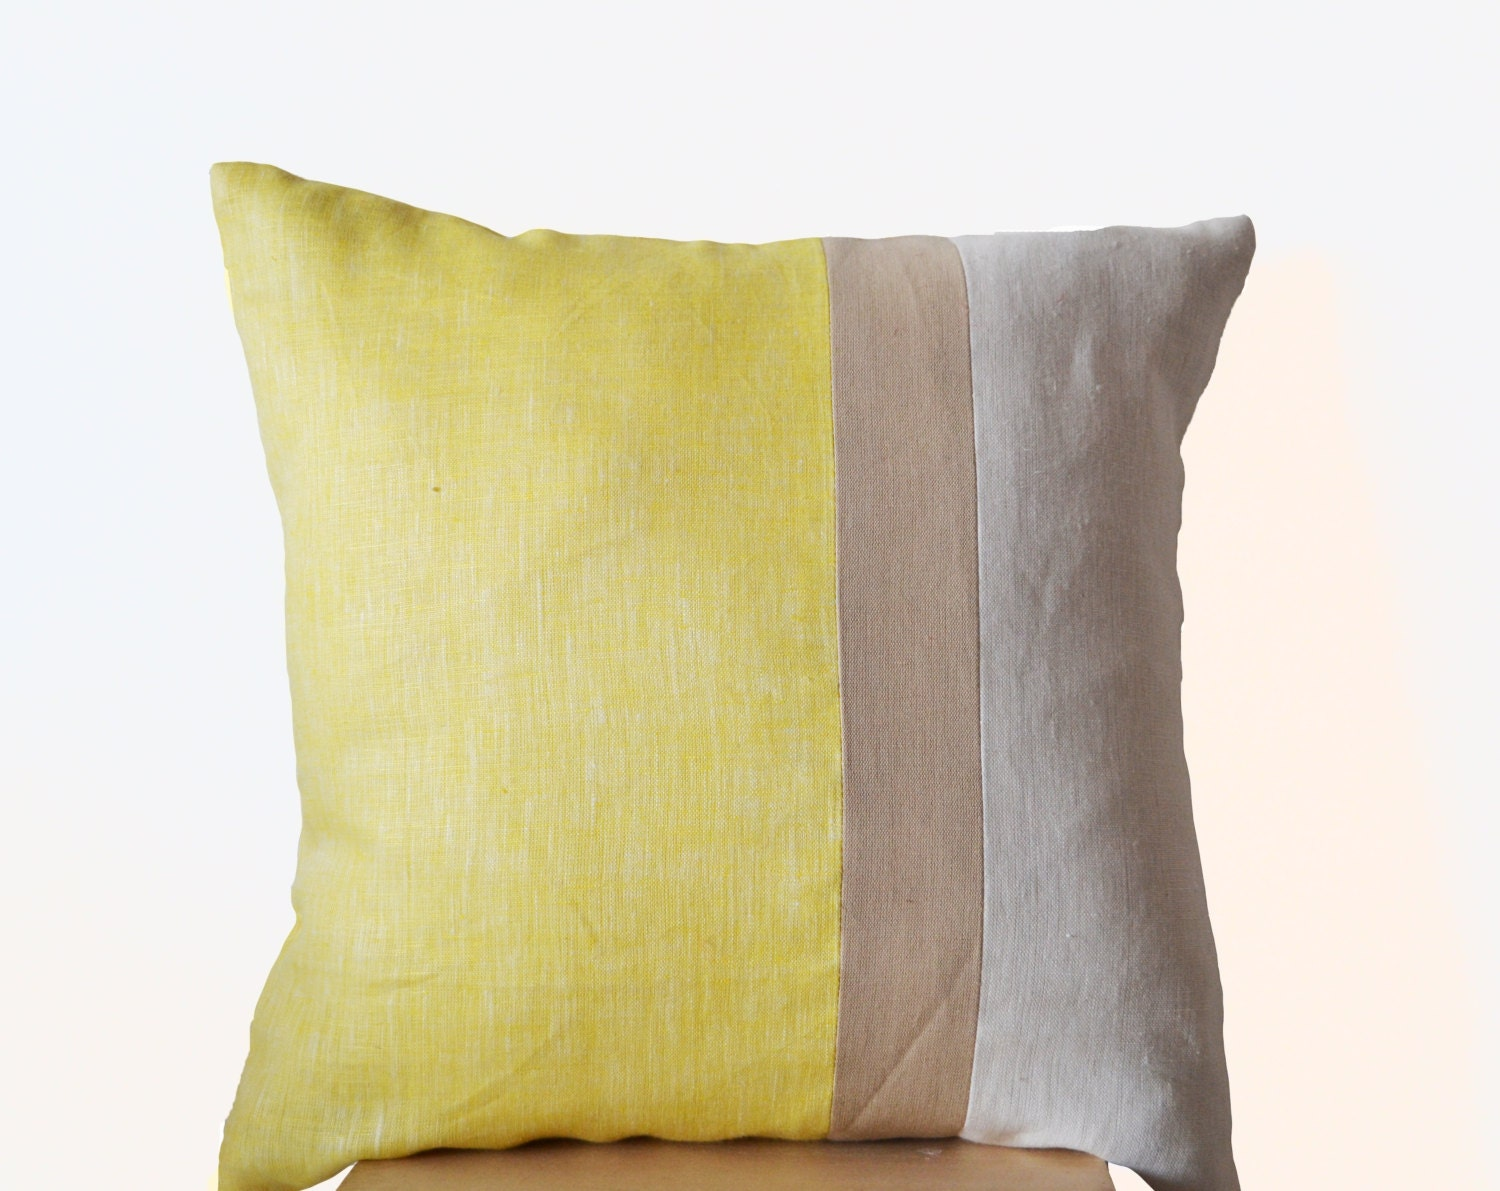 Throw Pillow Yellow : Yellow Pillow Cover Large Throw Pillows color block Euro